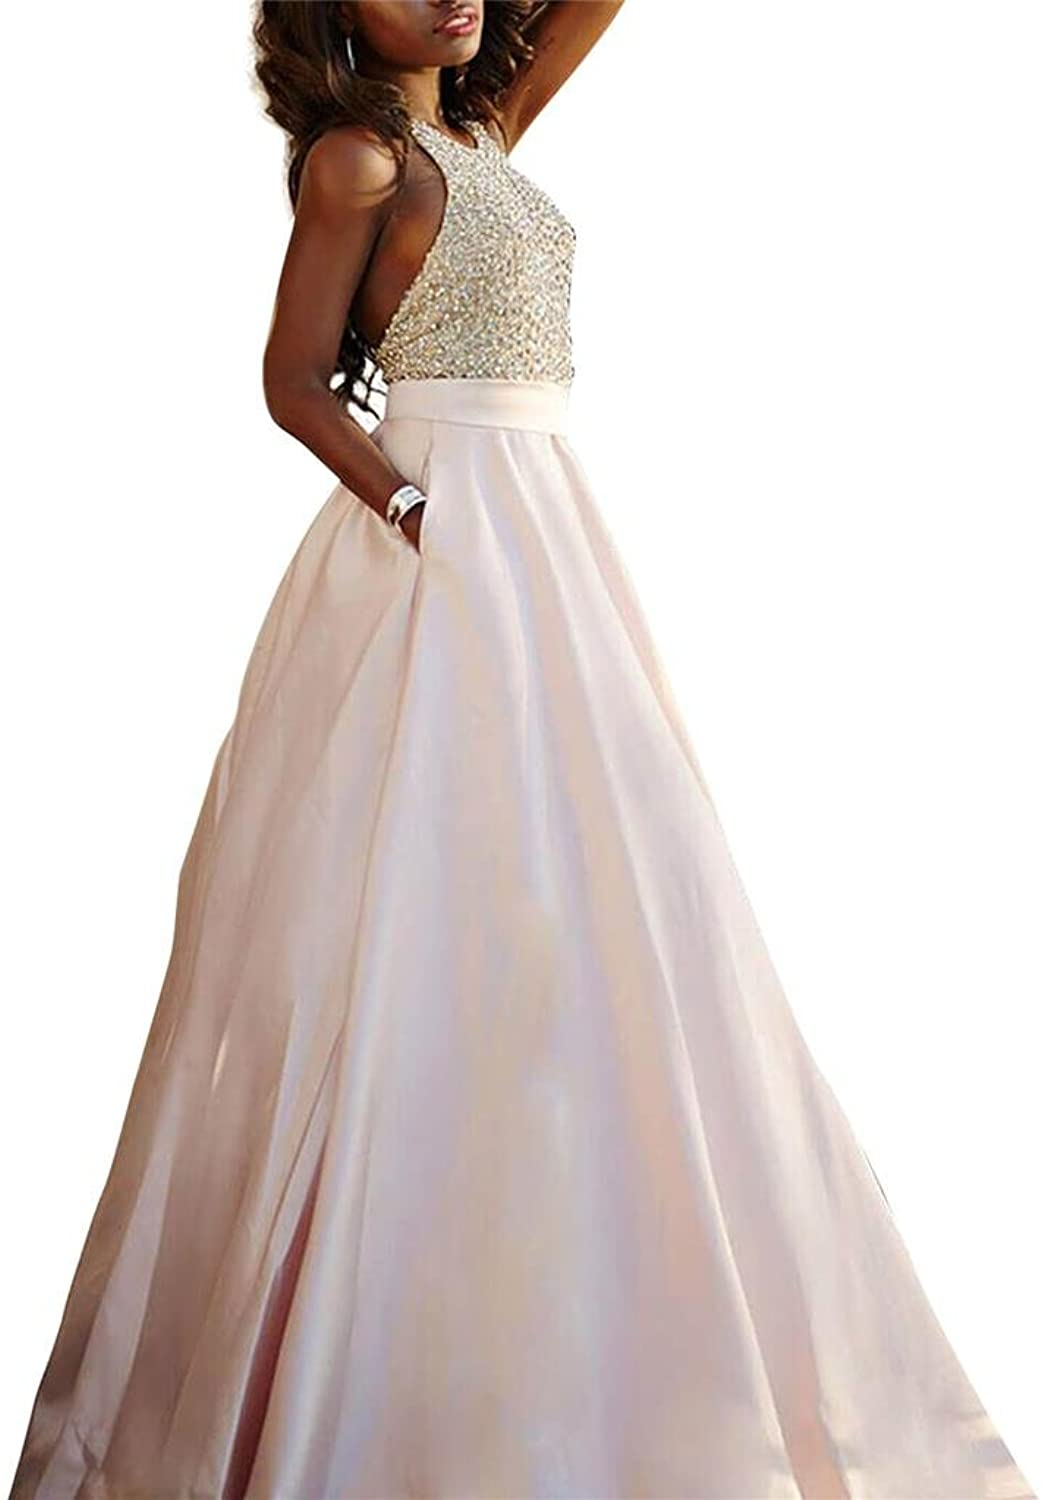 Changjie Women's 2016 Halter Backless Formal Evening Dresses Beading Prom Gown